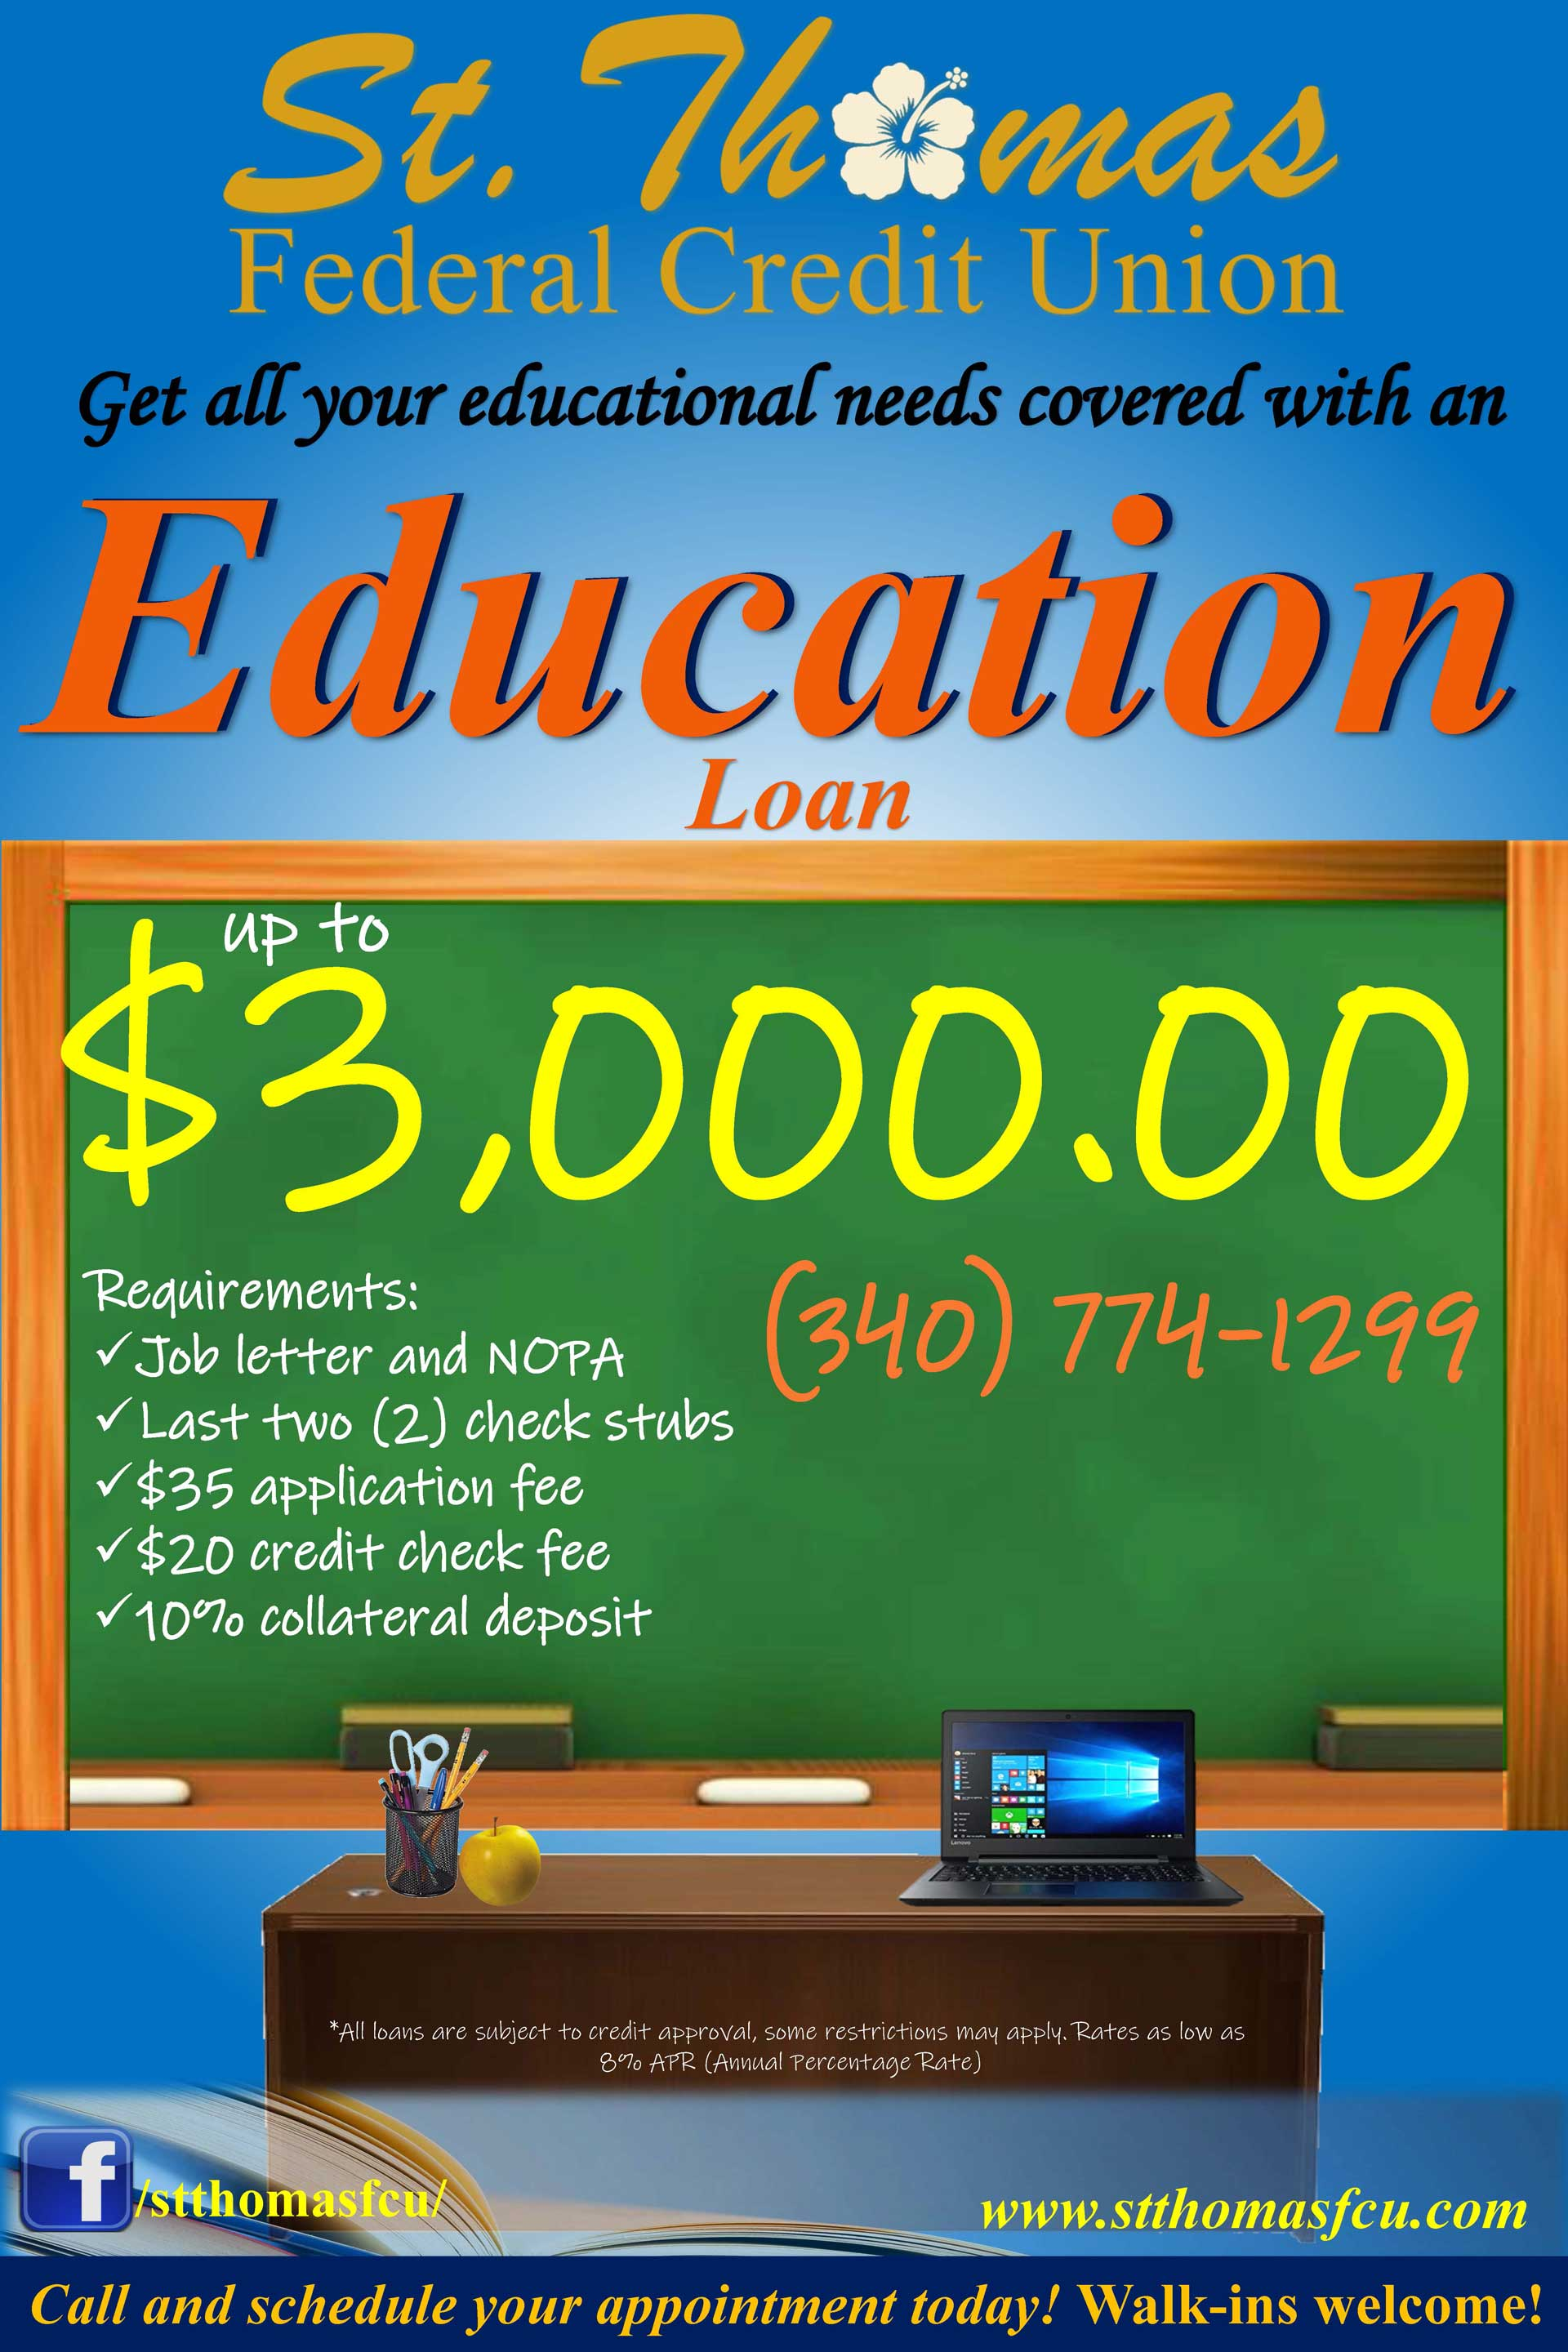 Educators! Apply for an education loan!